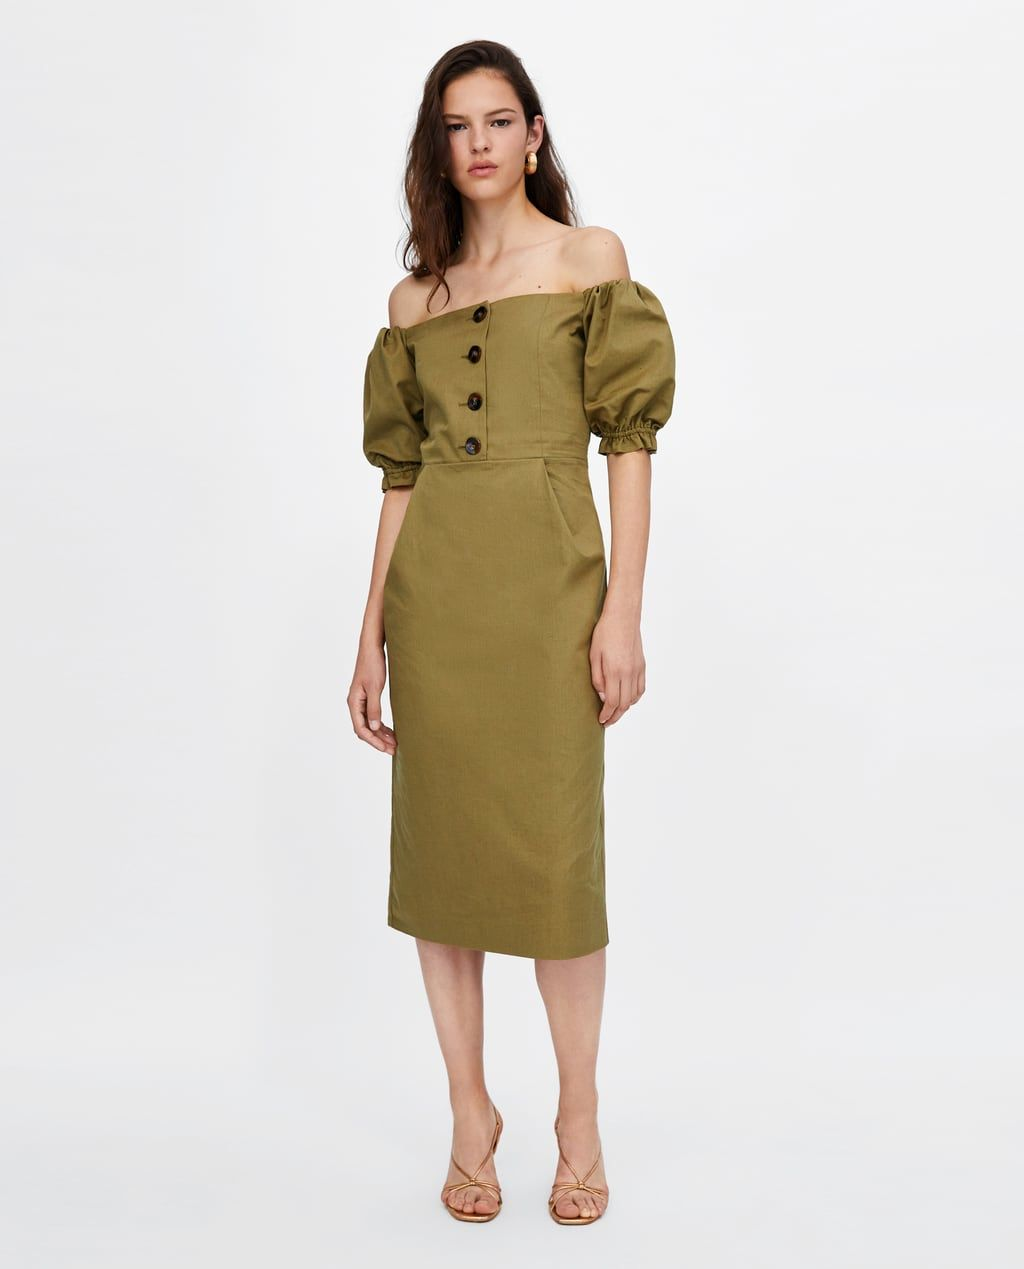 9829ec0c Image 1 of OFF-THE-SHOULDER DRESS from Zara   Looks I love in 2019 ...